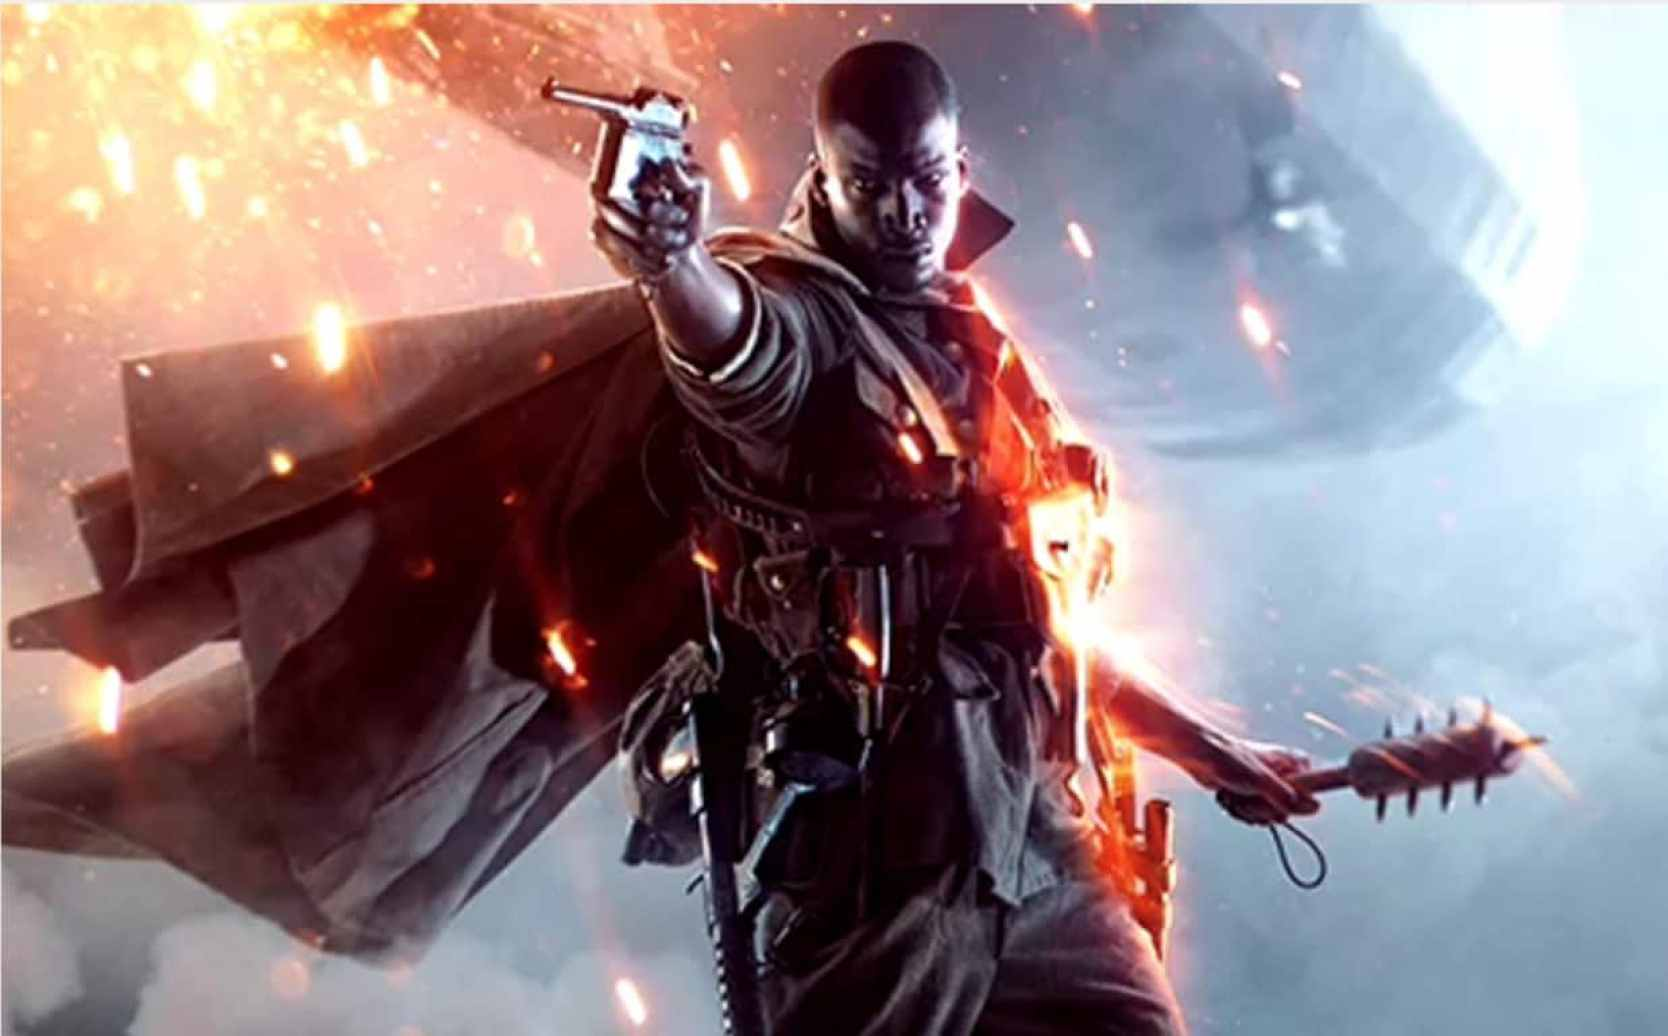 The Battlefield 5 image posted on the Xbox Store